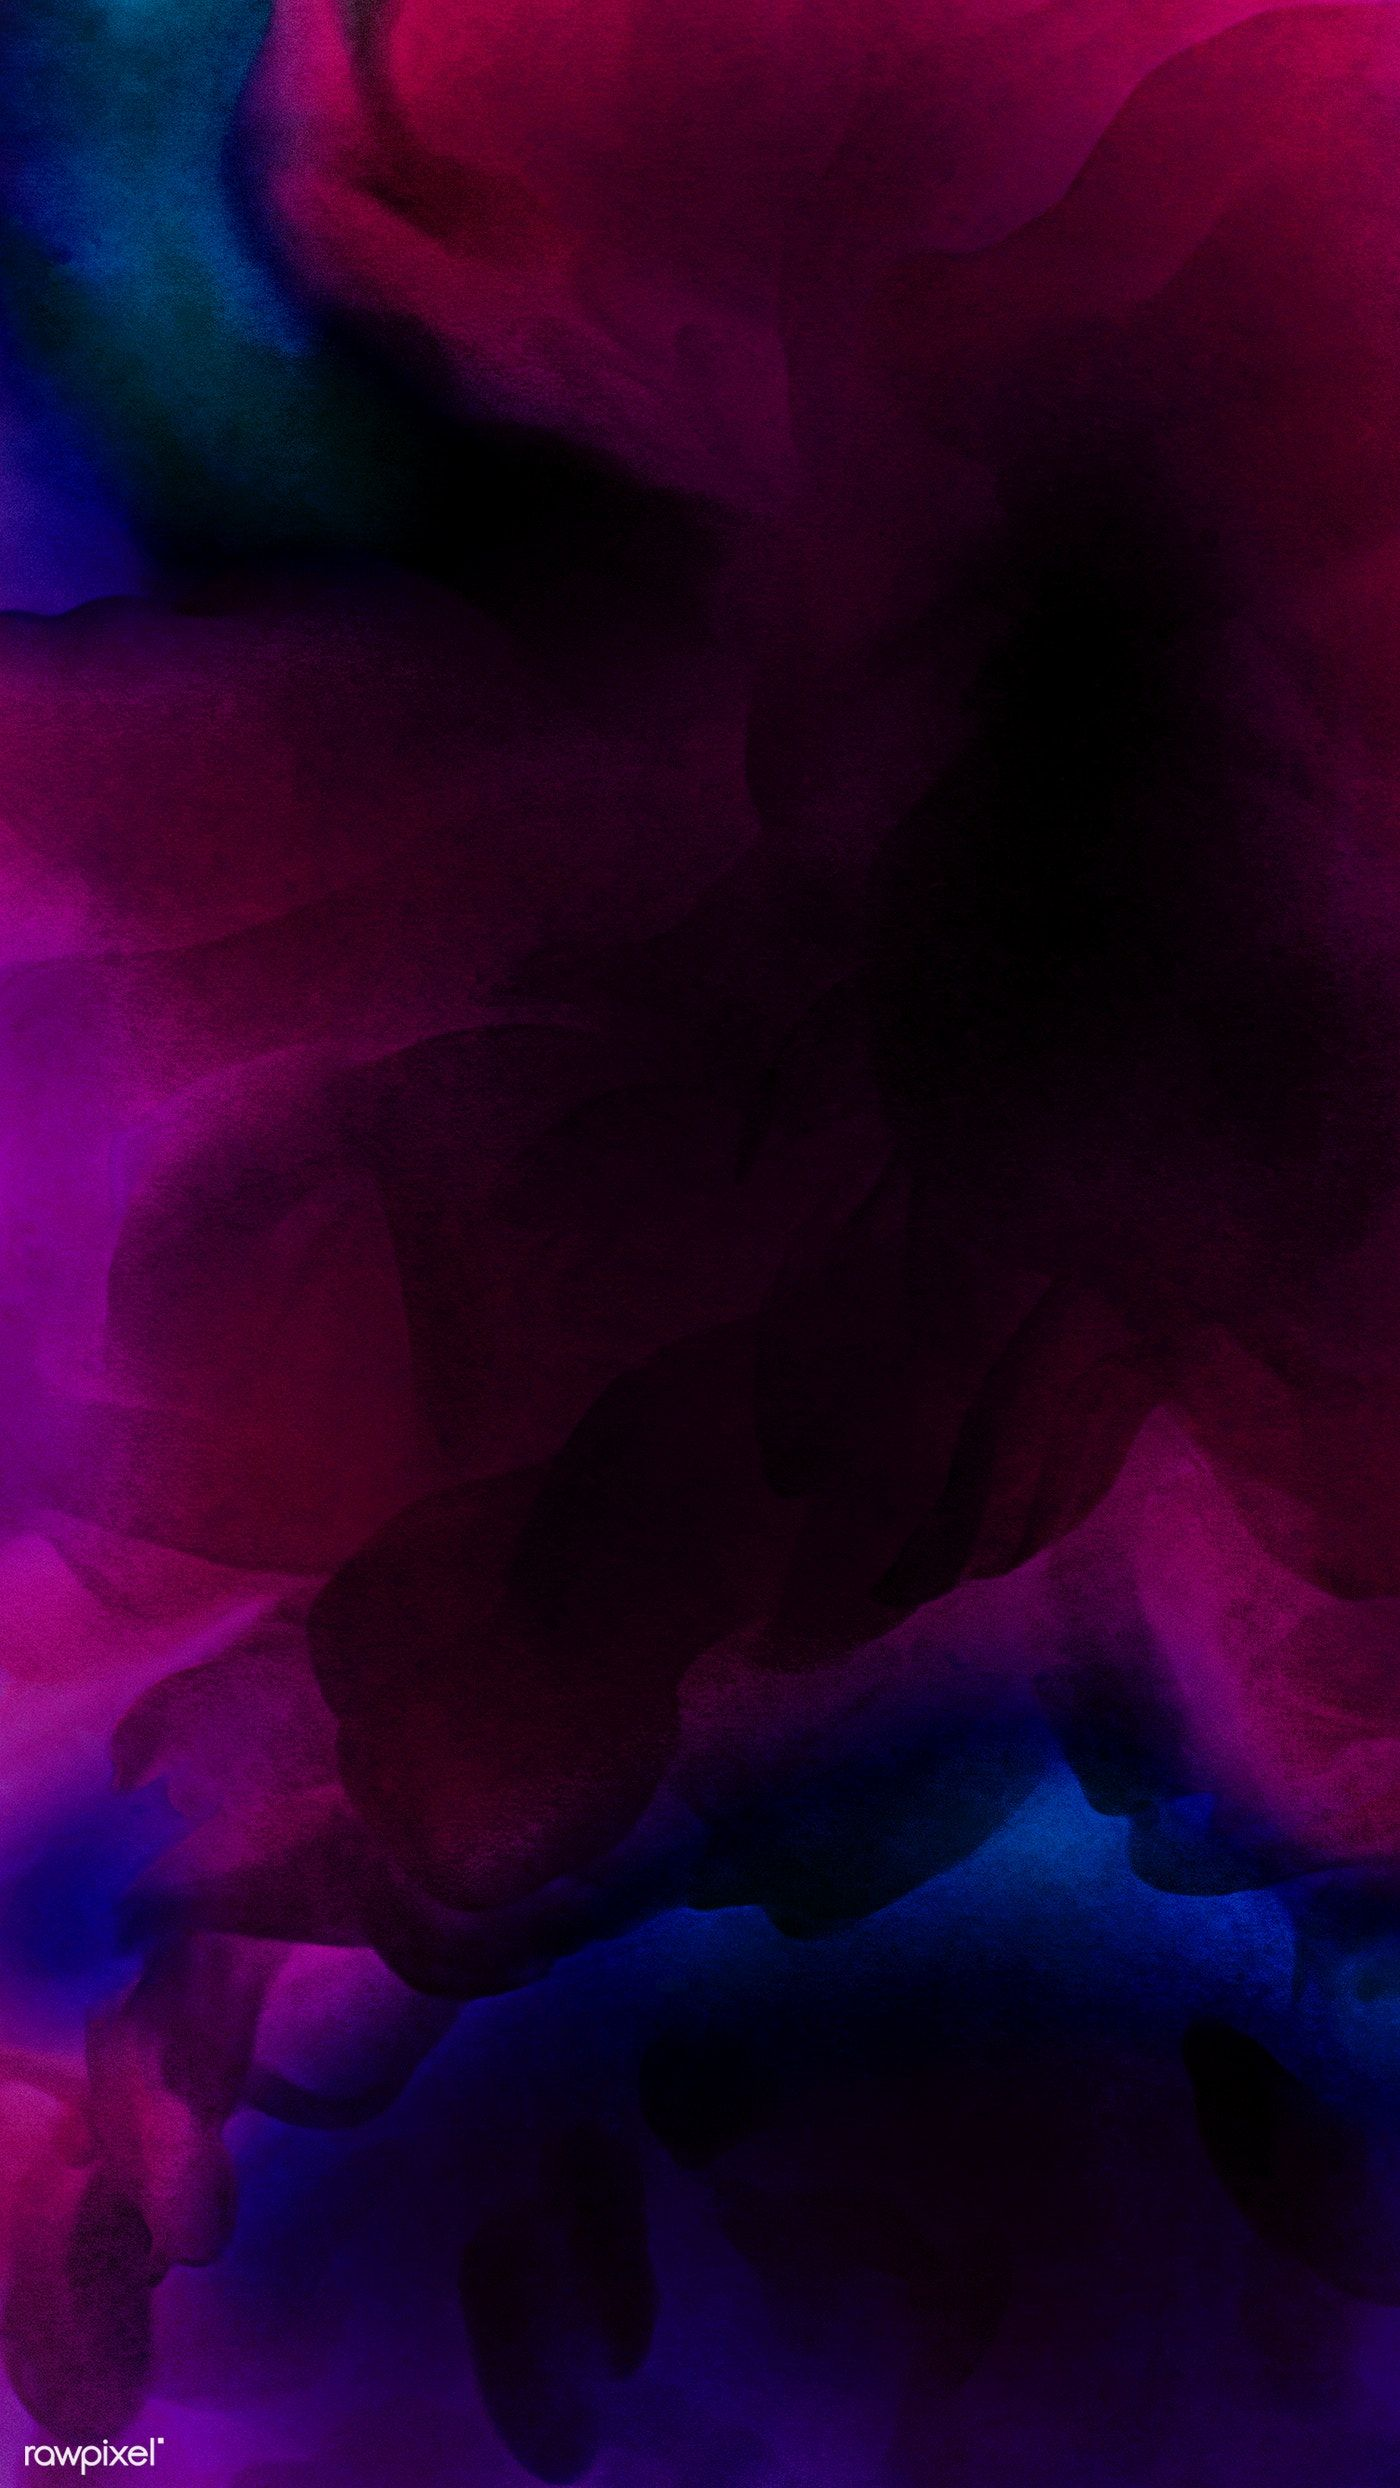 Download Premium Illustration Of Abstract Dark Pink And Blue Colors Mobile Watercolor Pattern Background Light Texture Background Halloween Wallpaper